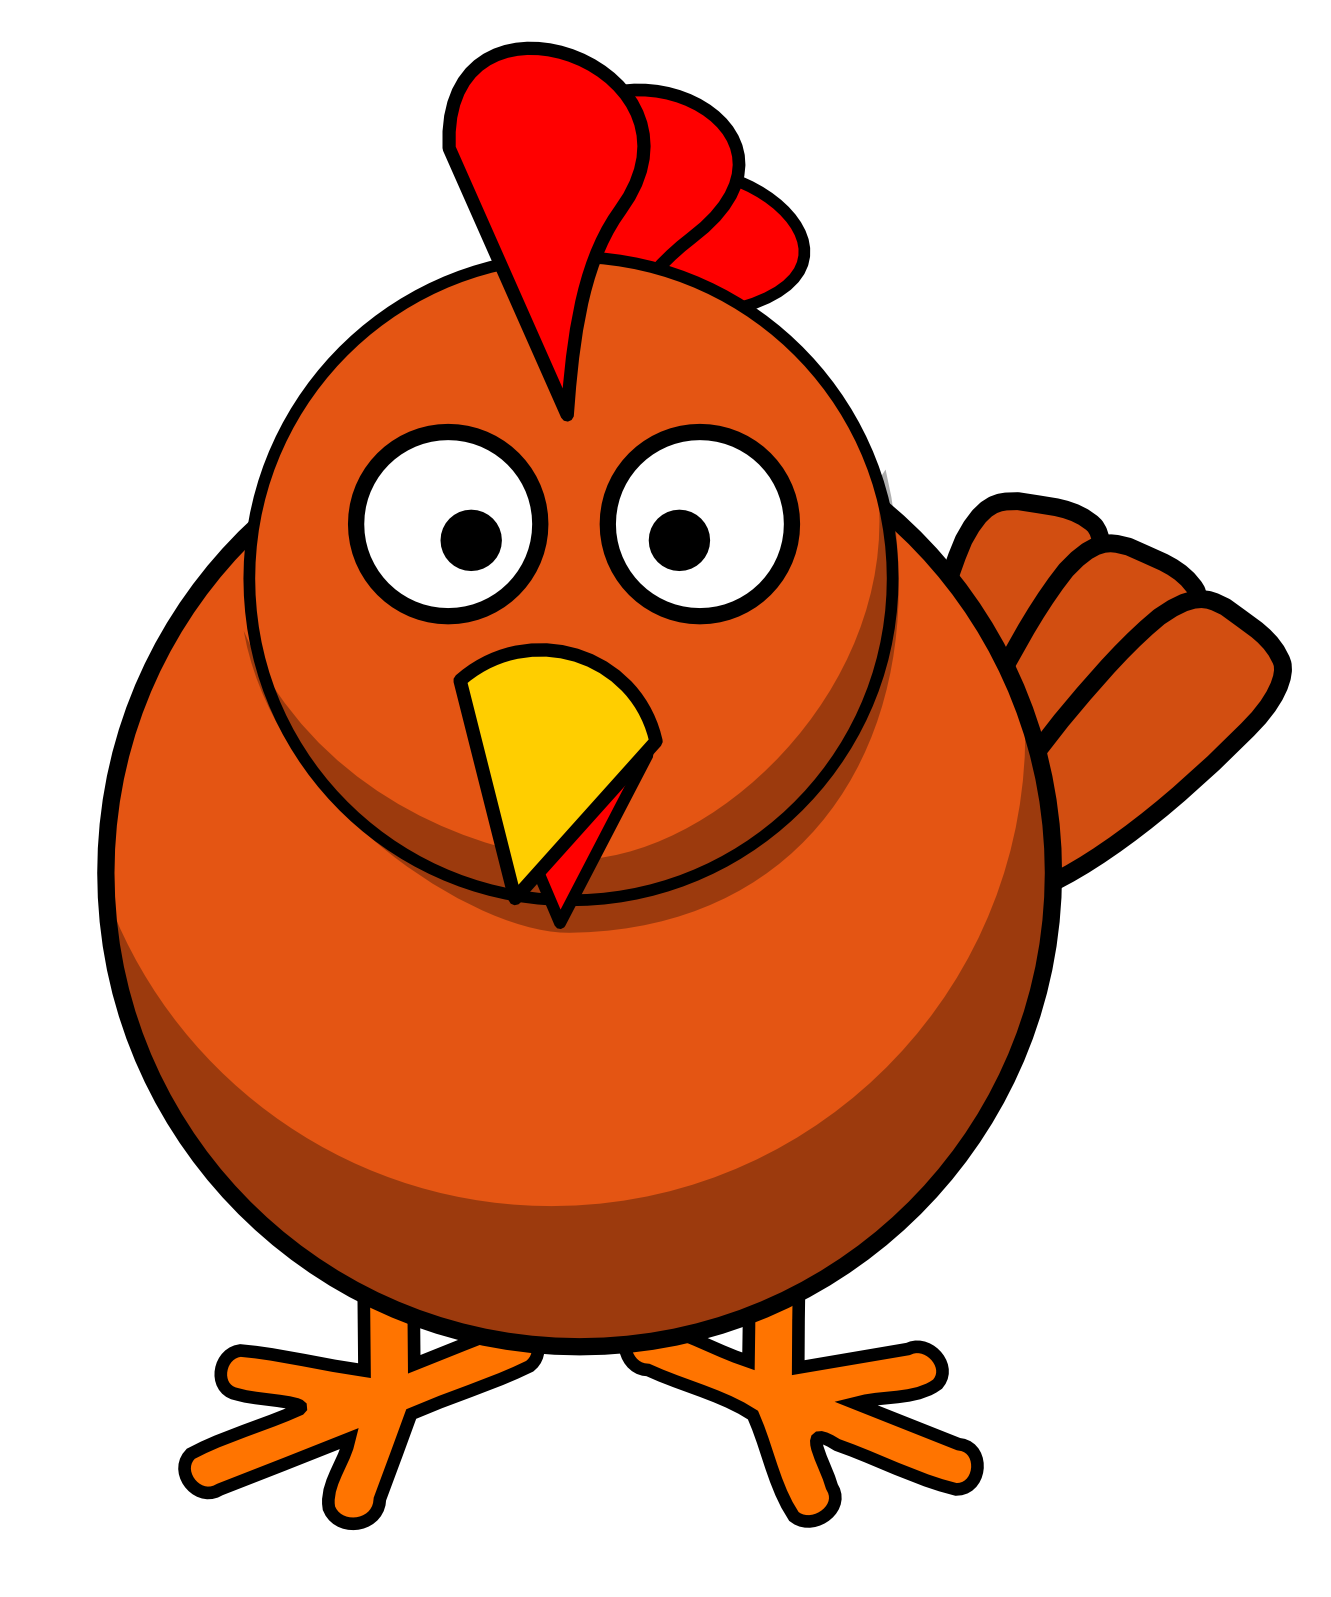 Clipart chicken. Free panda images chickenclipart